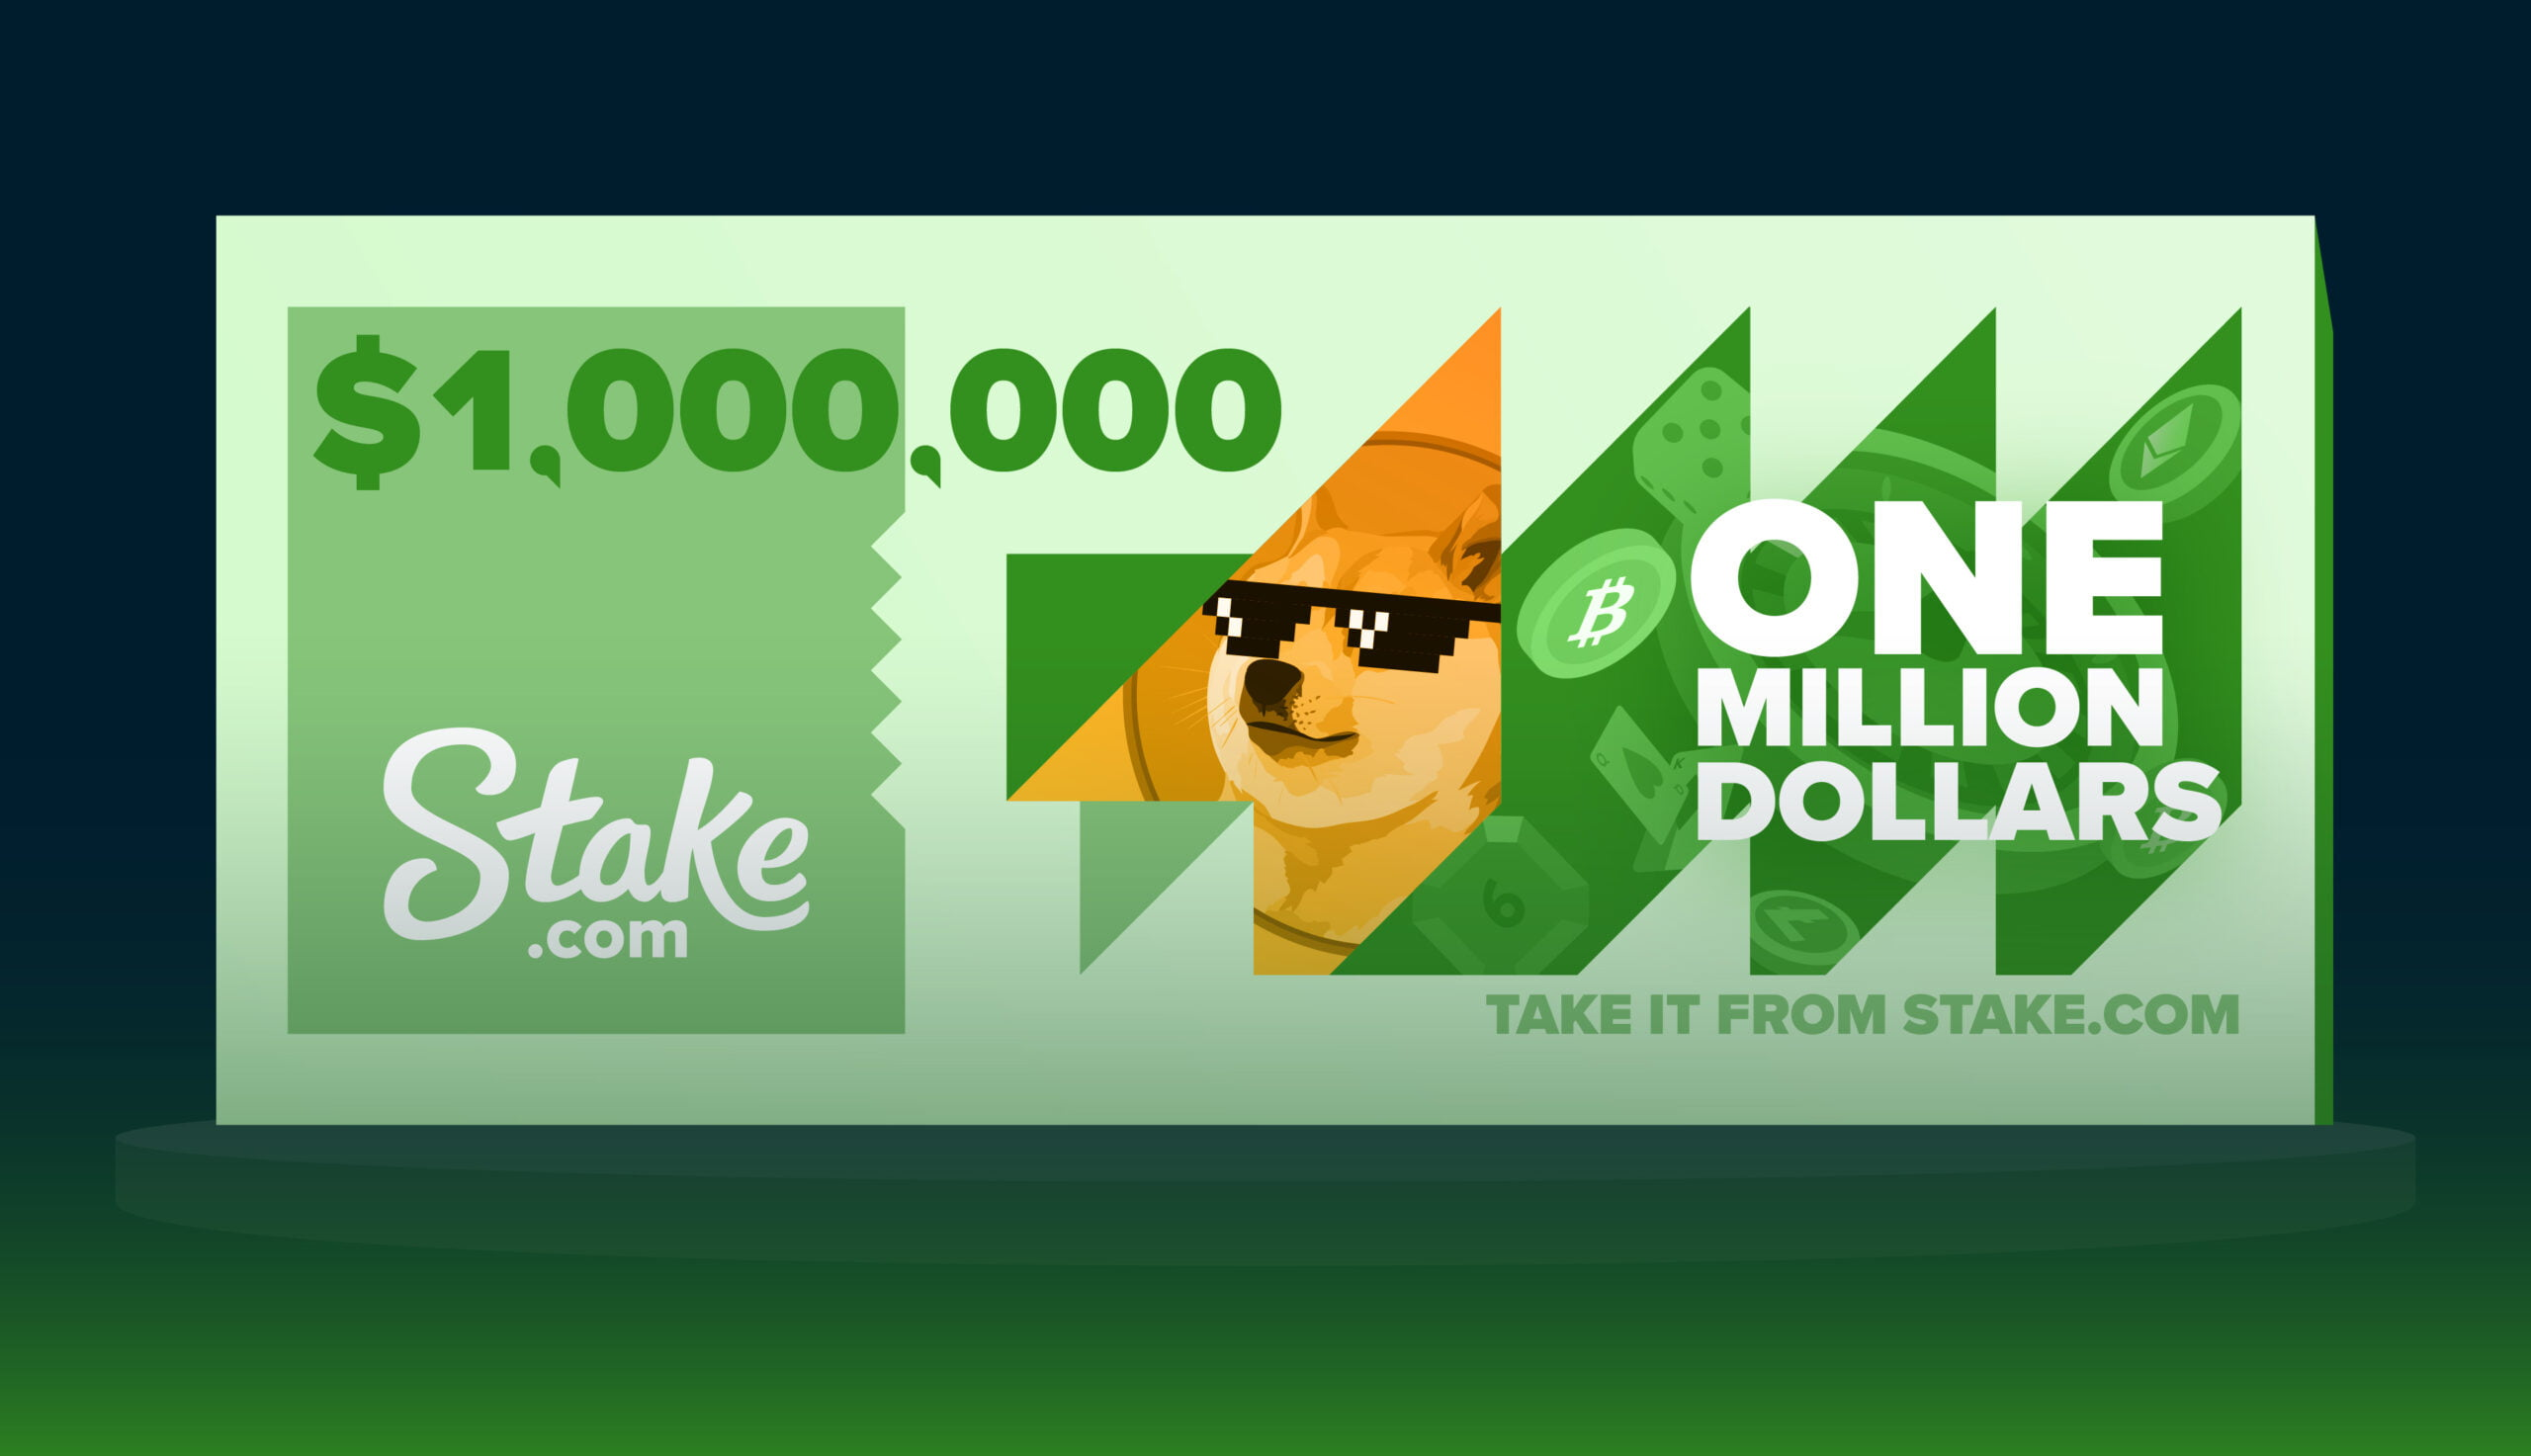 Stake.com Launches Million Dollar Crypto Race